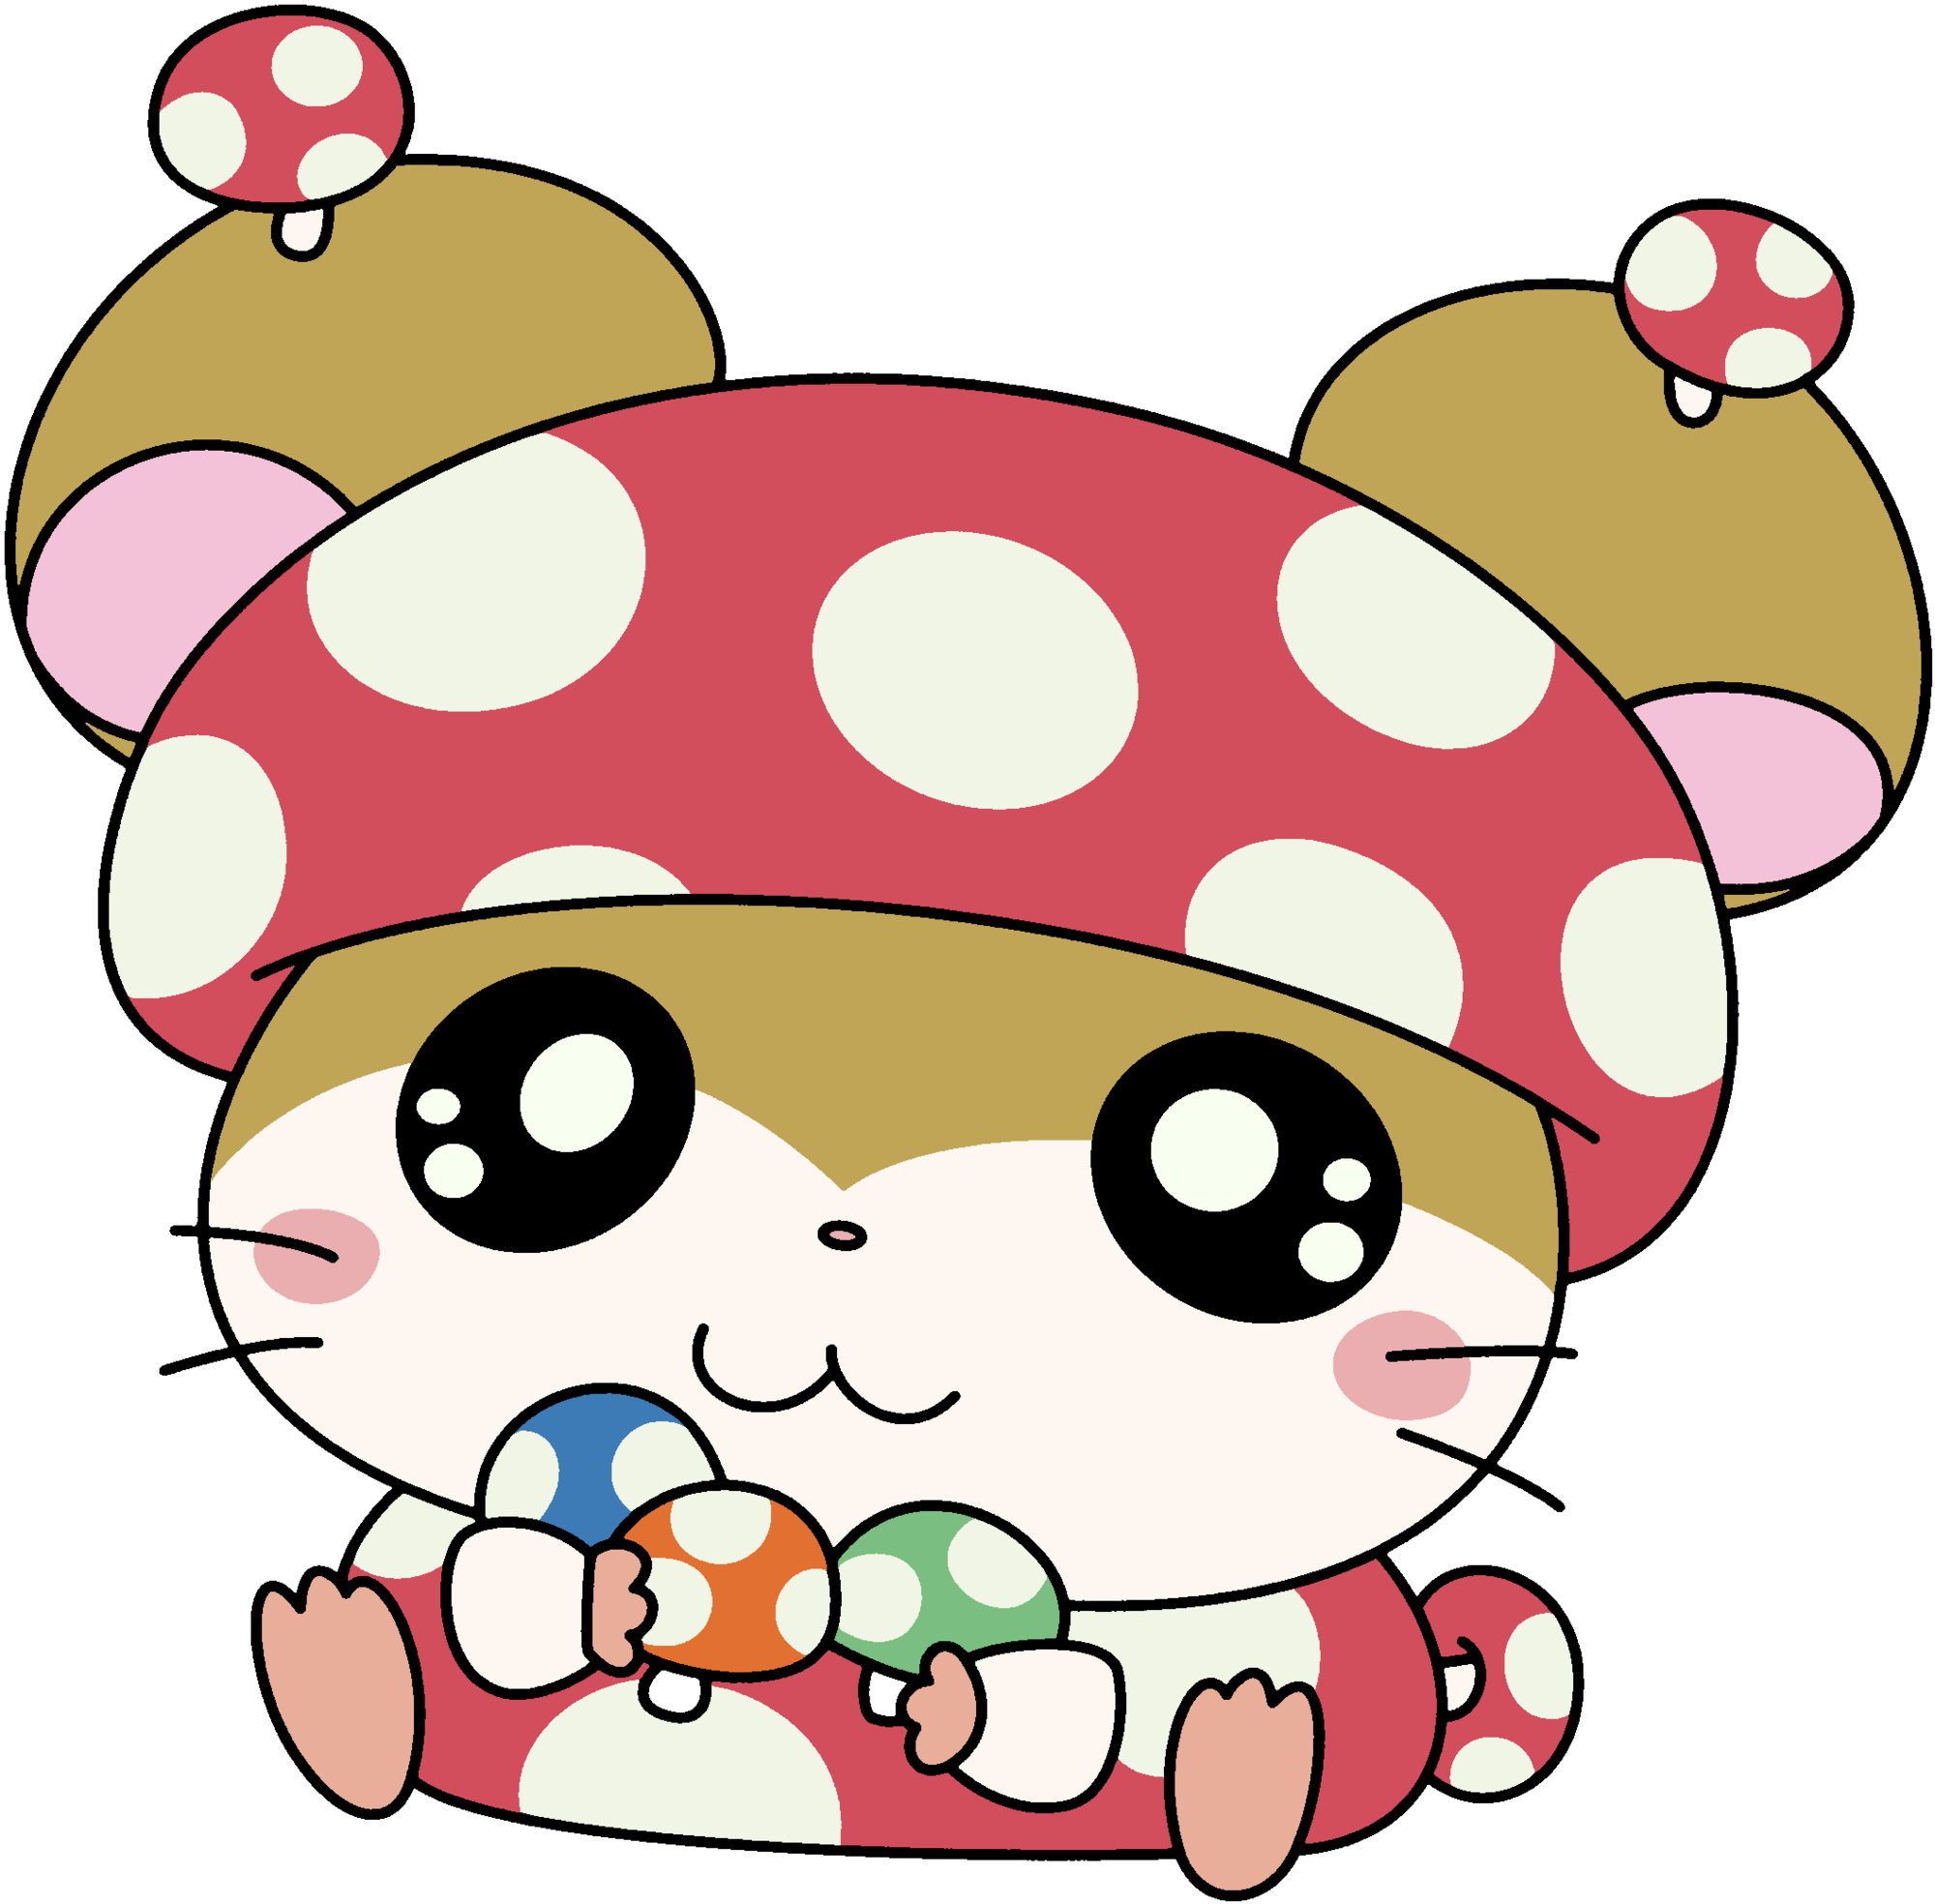 Championi | The Hamtaro Wiki | FANDOM powered by Wikia